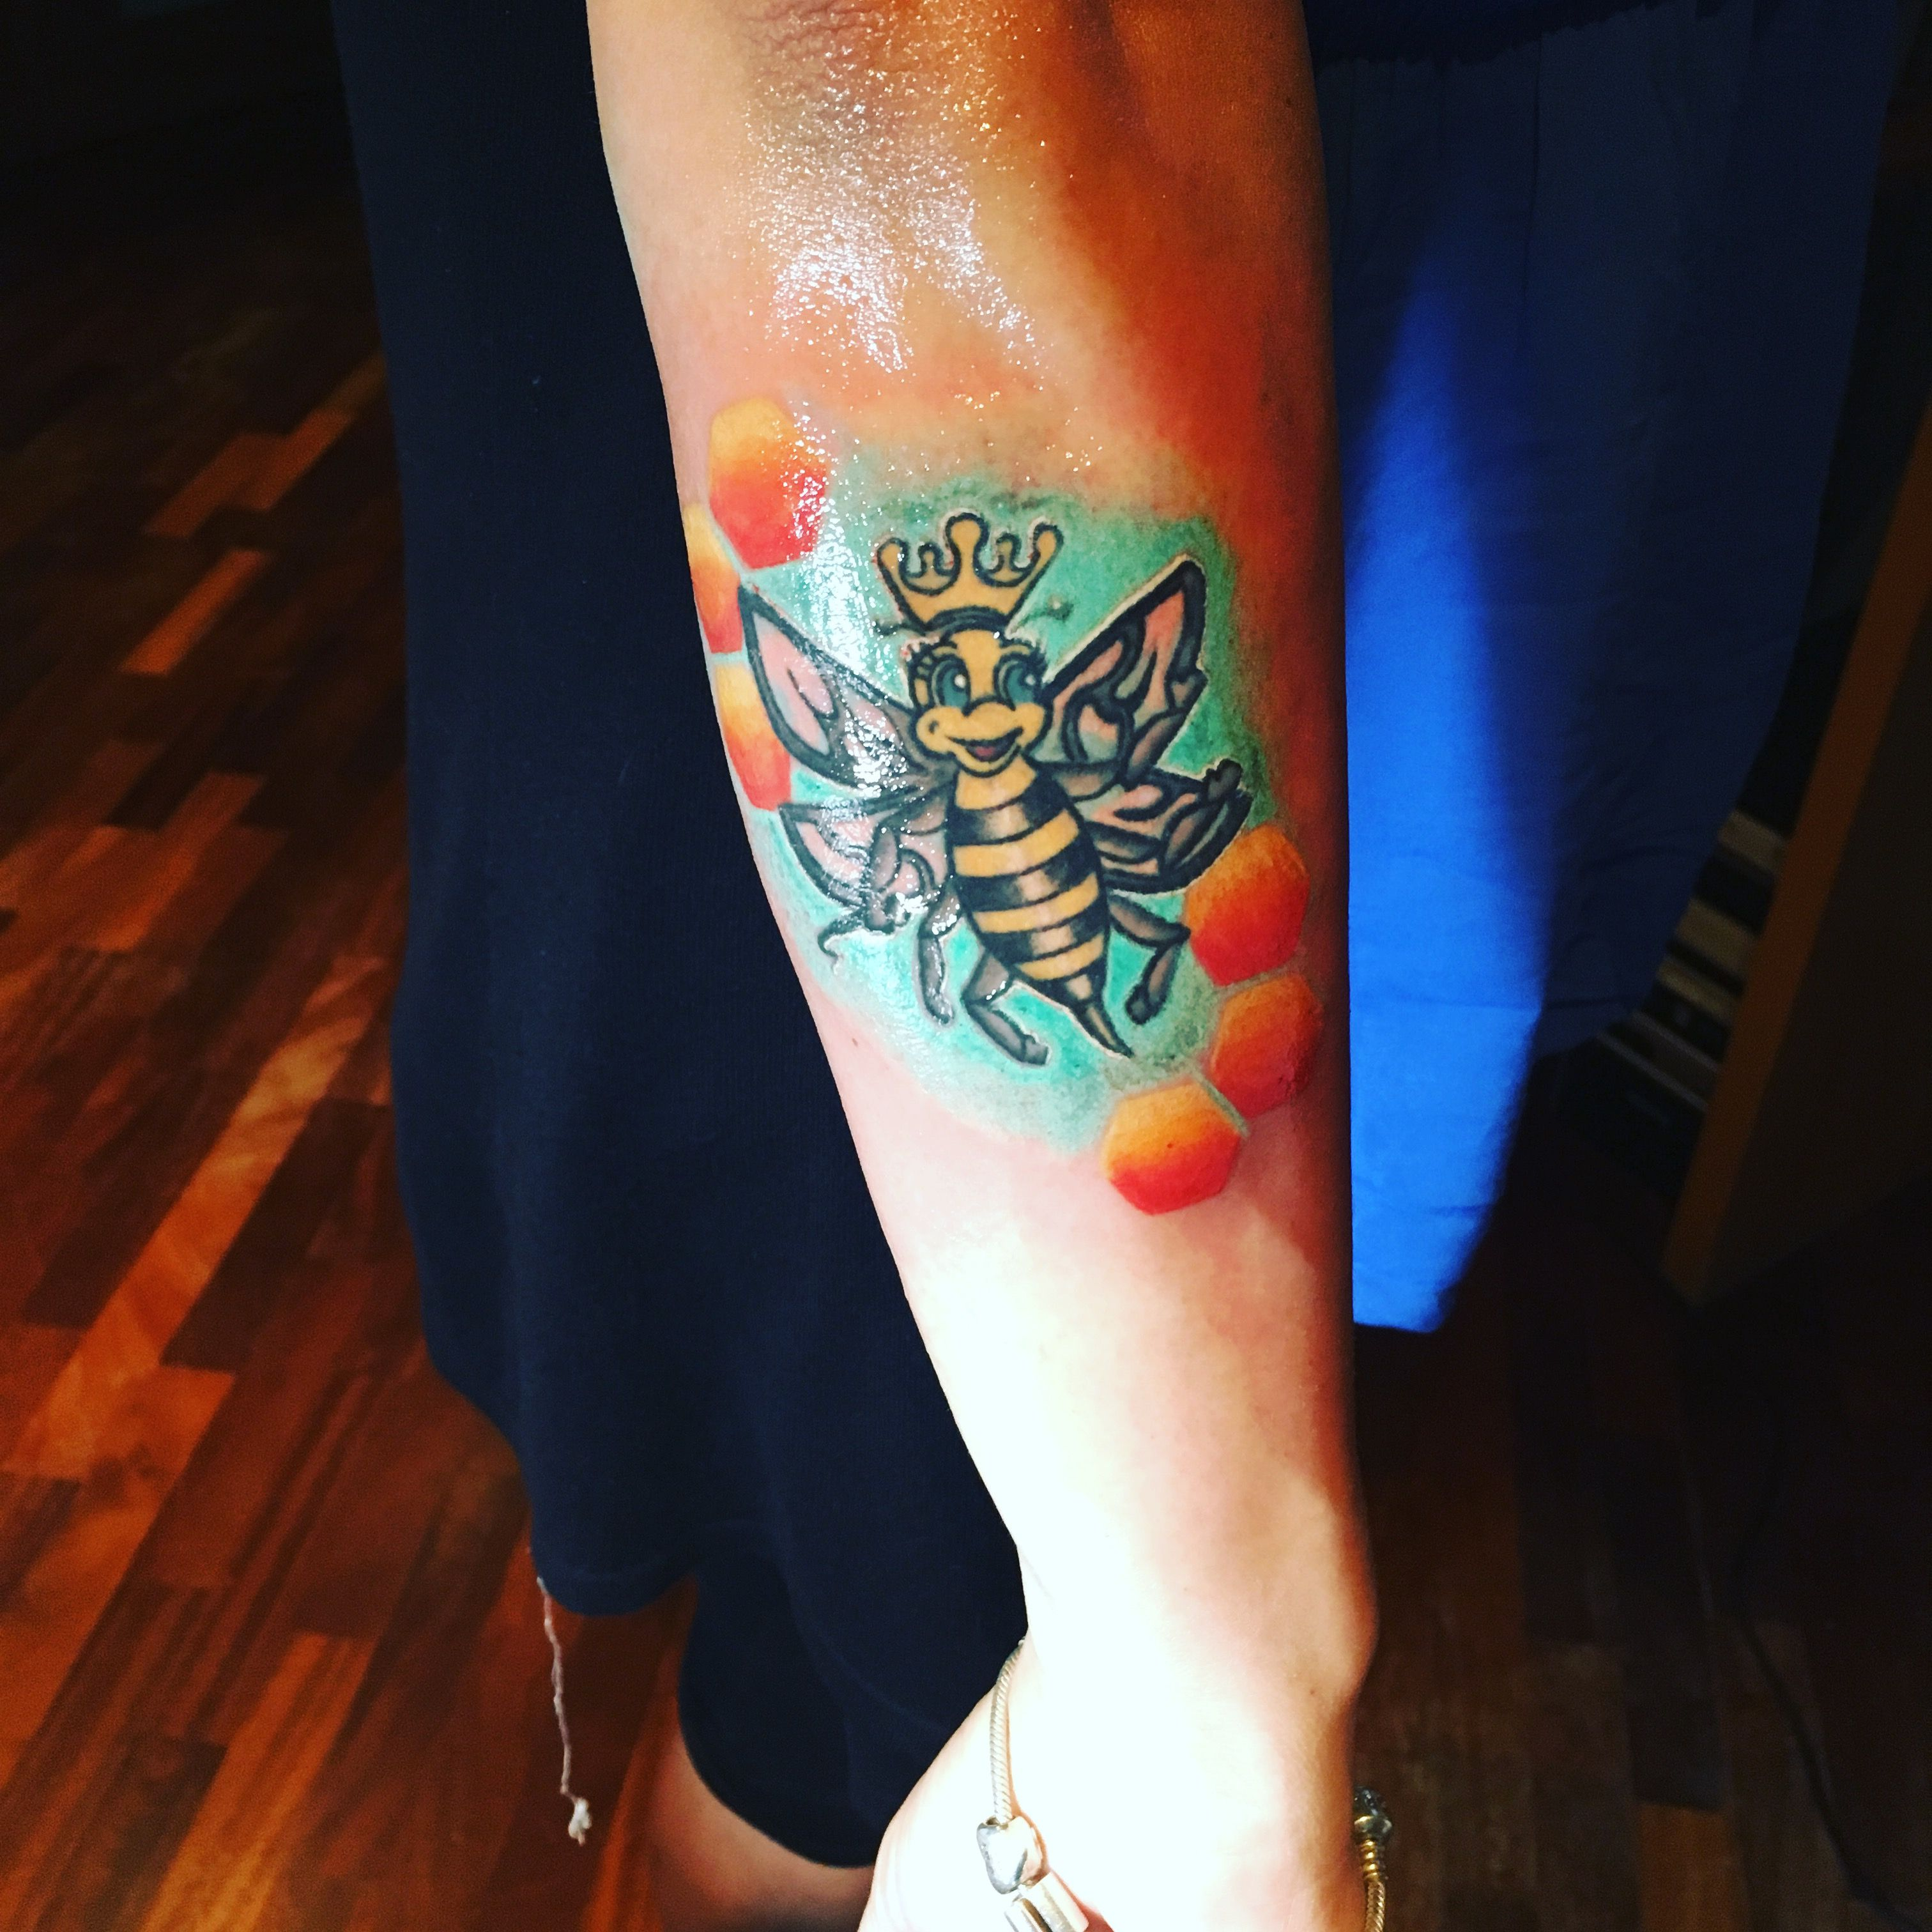 Queen Bee Tattoo, dedicated to the one and only Beyoncè